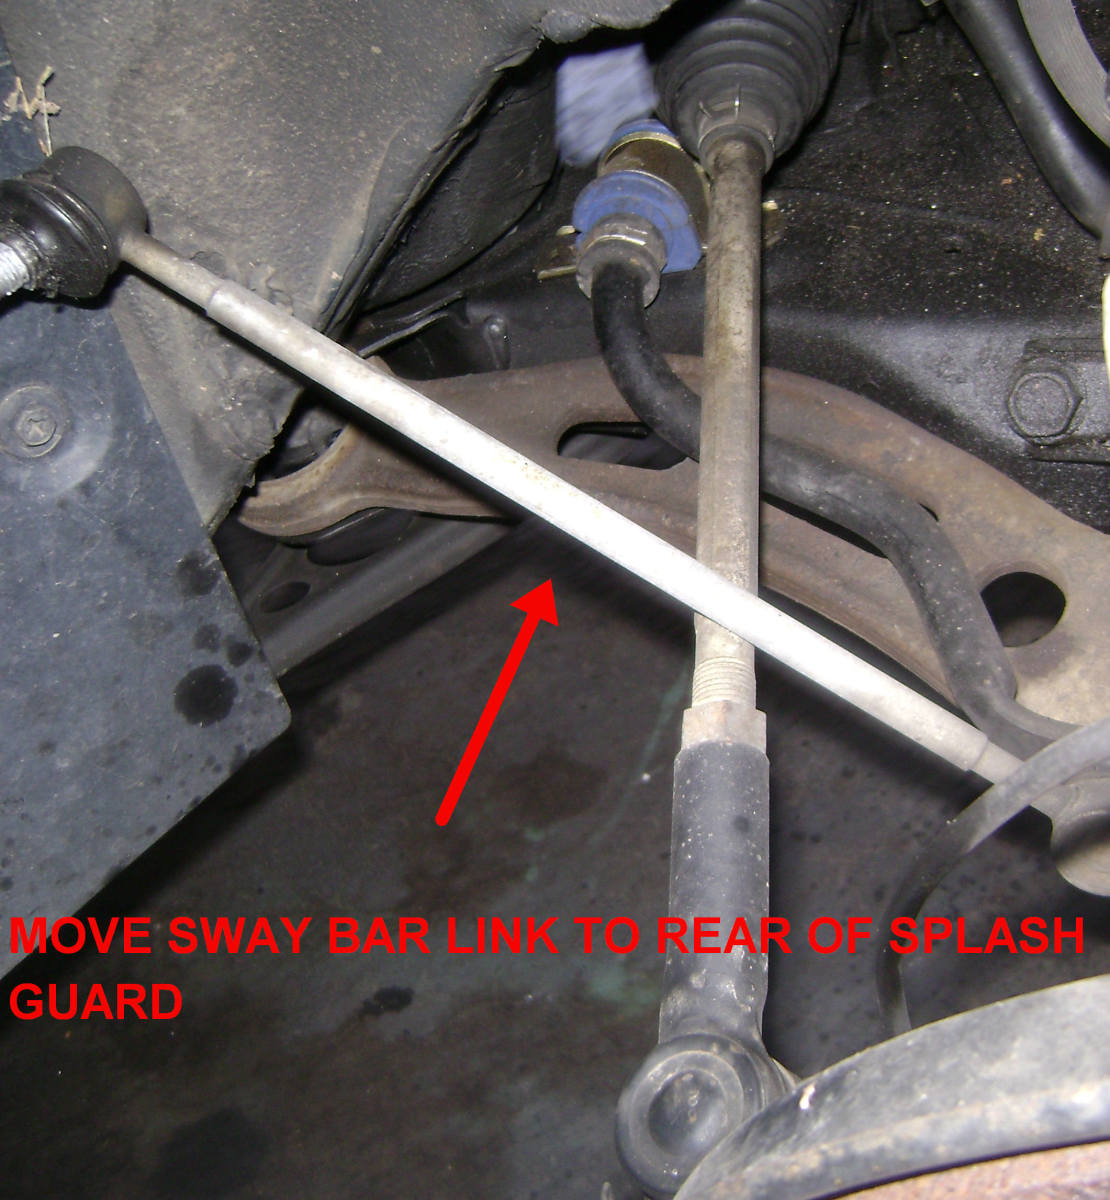 Position the sway bar link away from the strut assembly